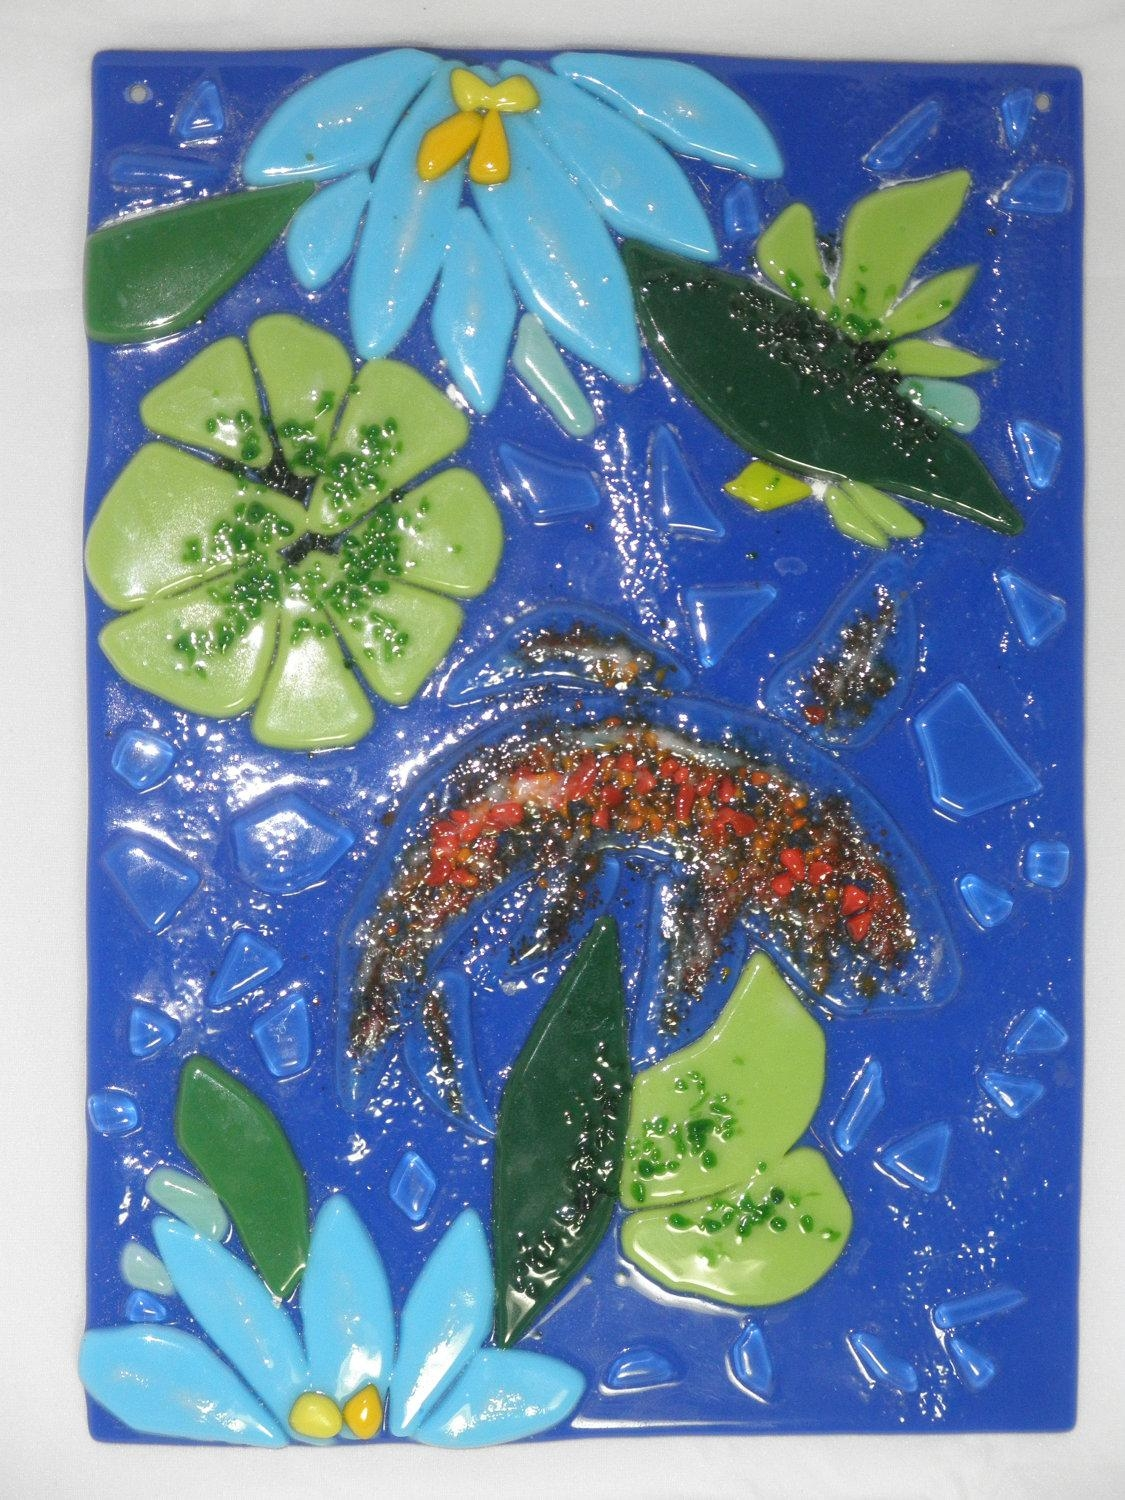 Koi Fish Tack Fused Glass Wall Hanging 6X8 Fused Regarding Fused Glass Wall Art Hanging (View 9 of 20)